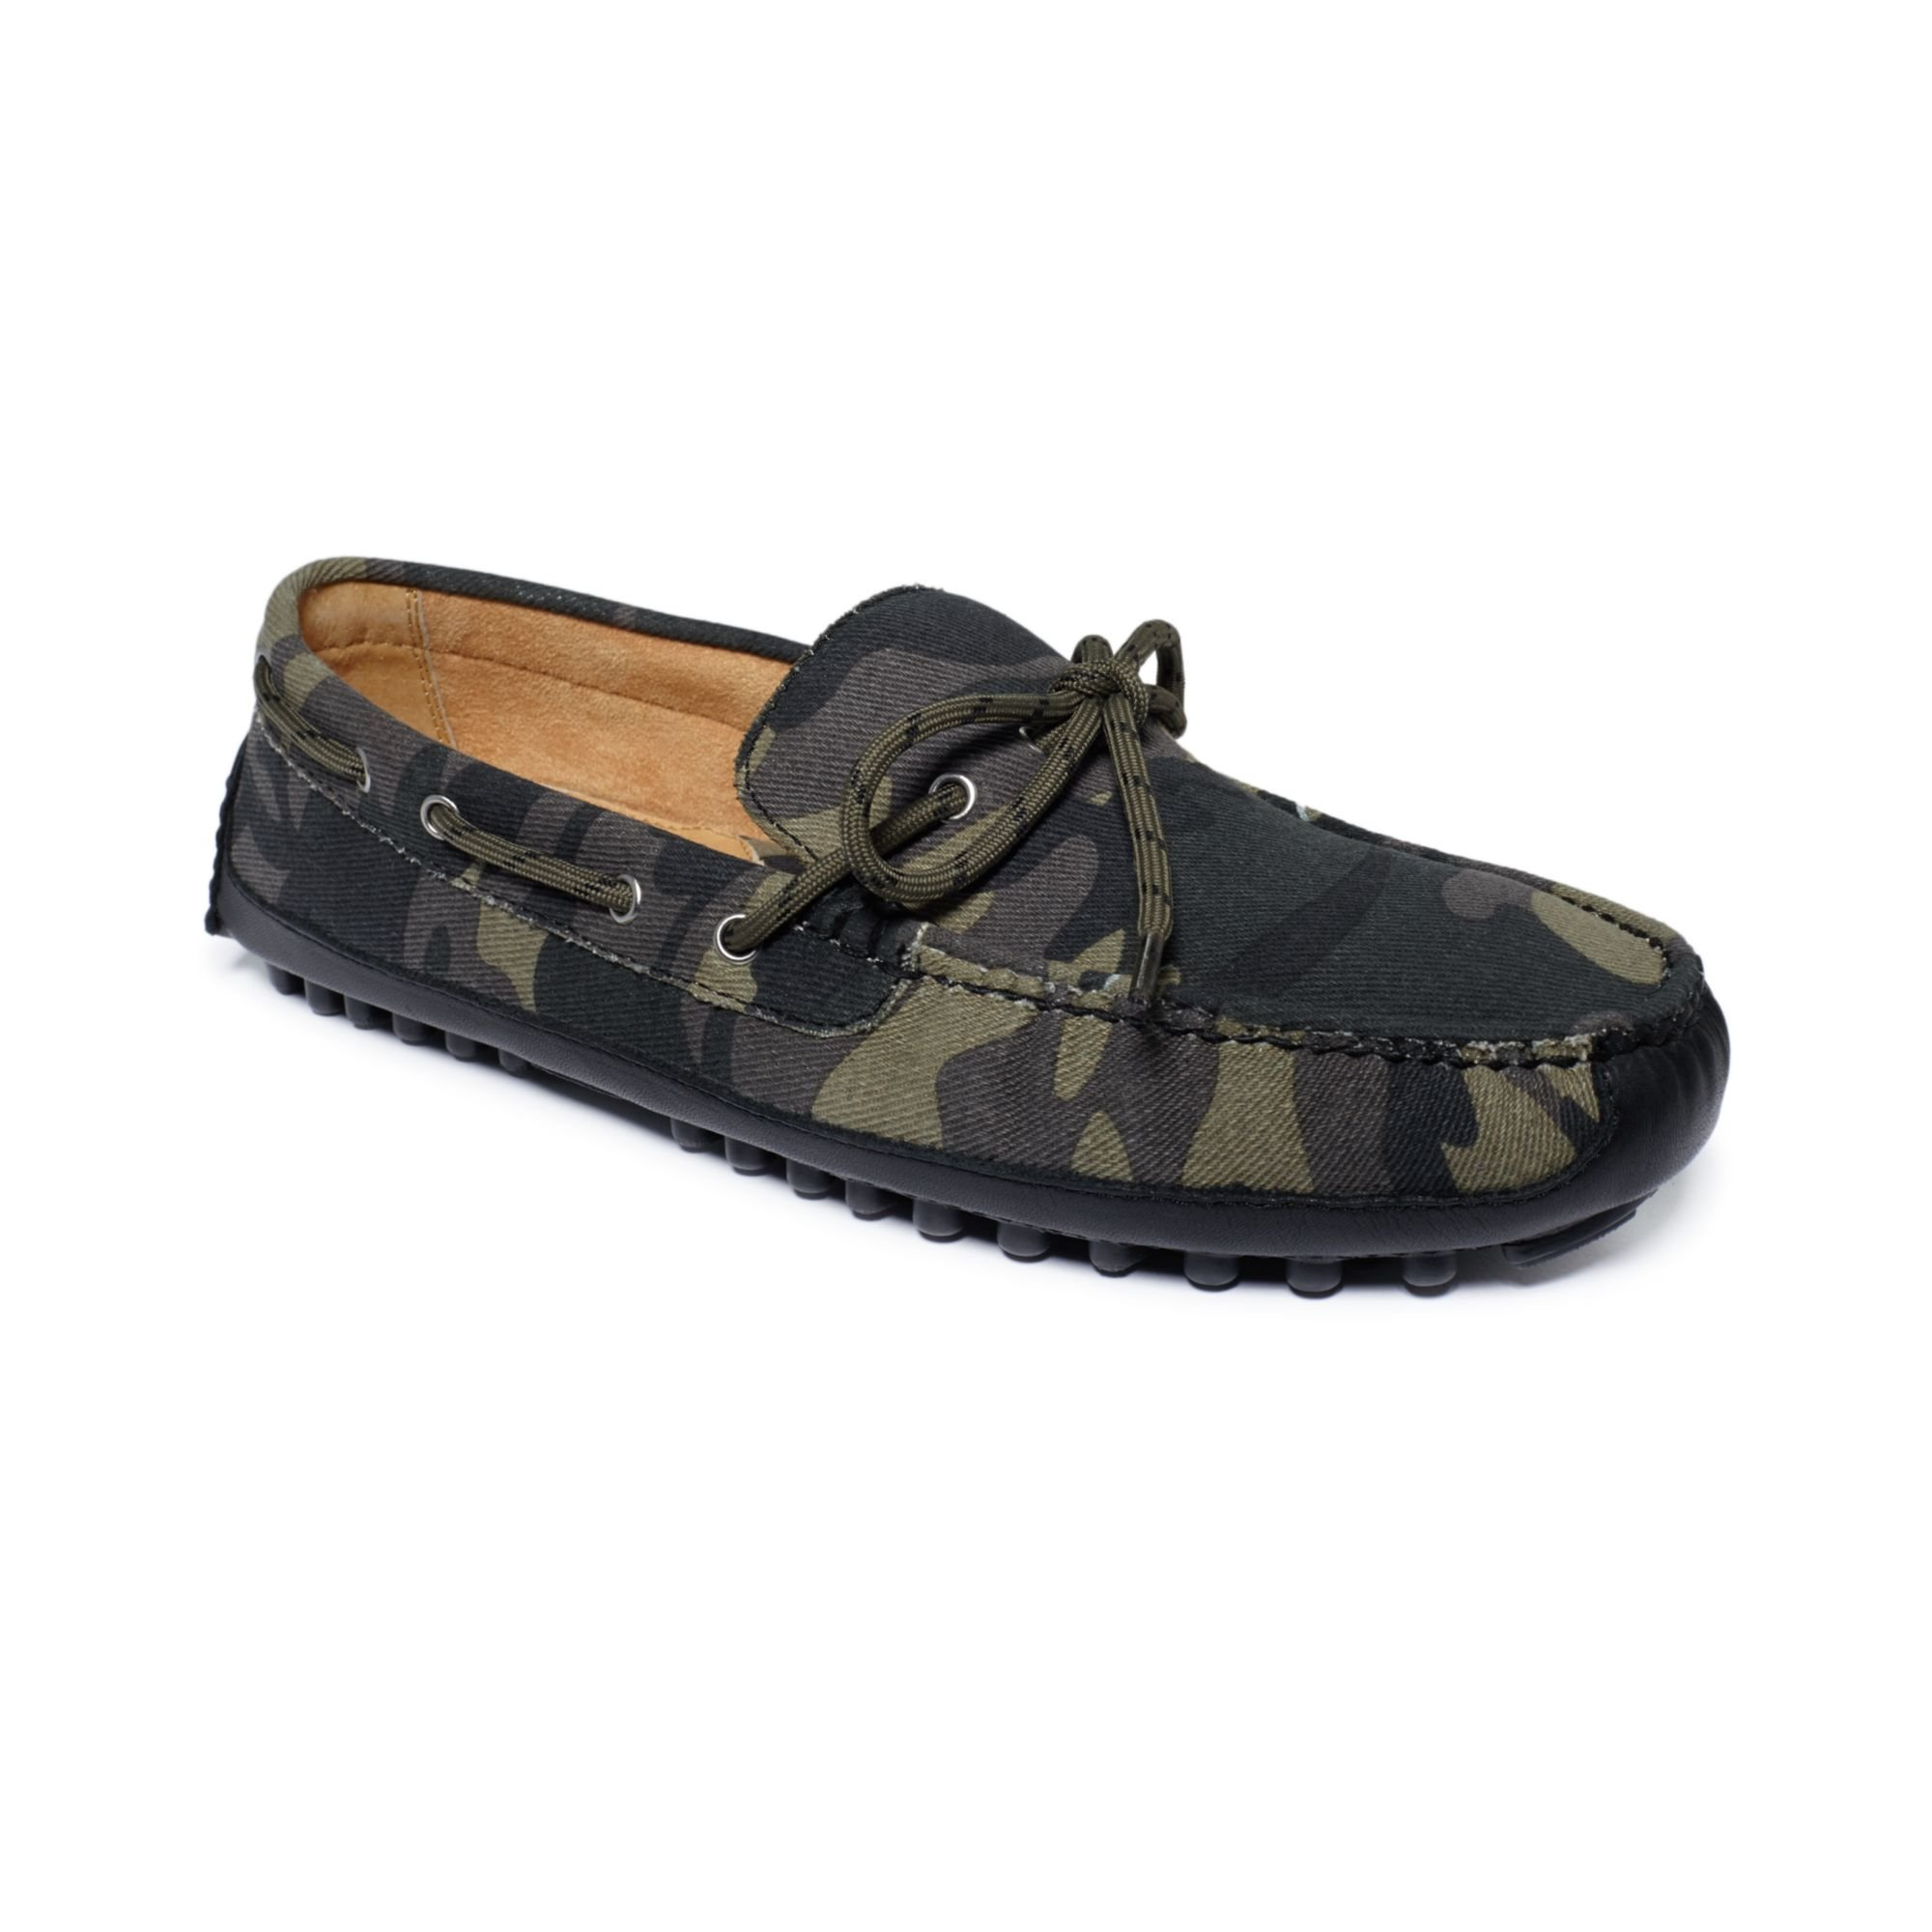 b2df46a81a1 Lyst - Cole Haan Grant Canoe Camp Drivers in Green for Men